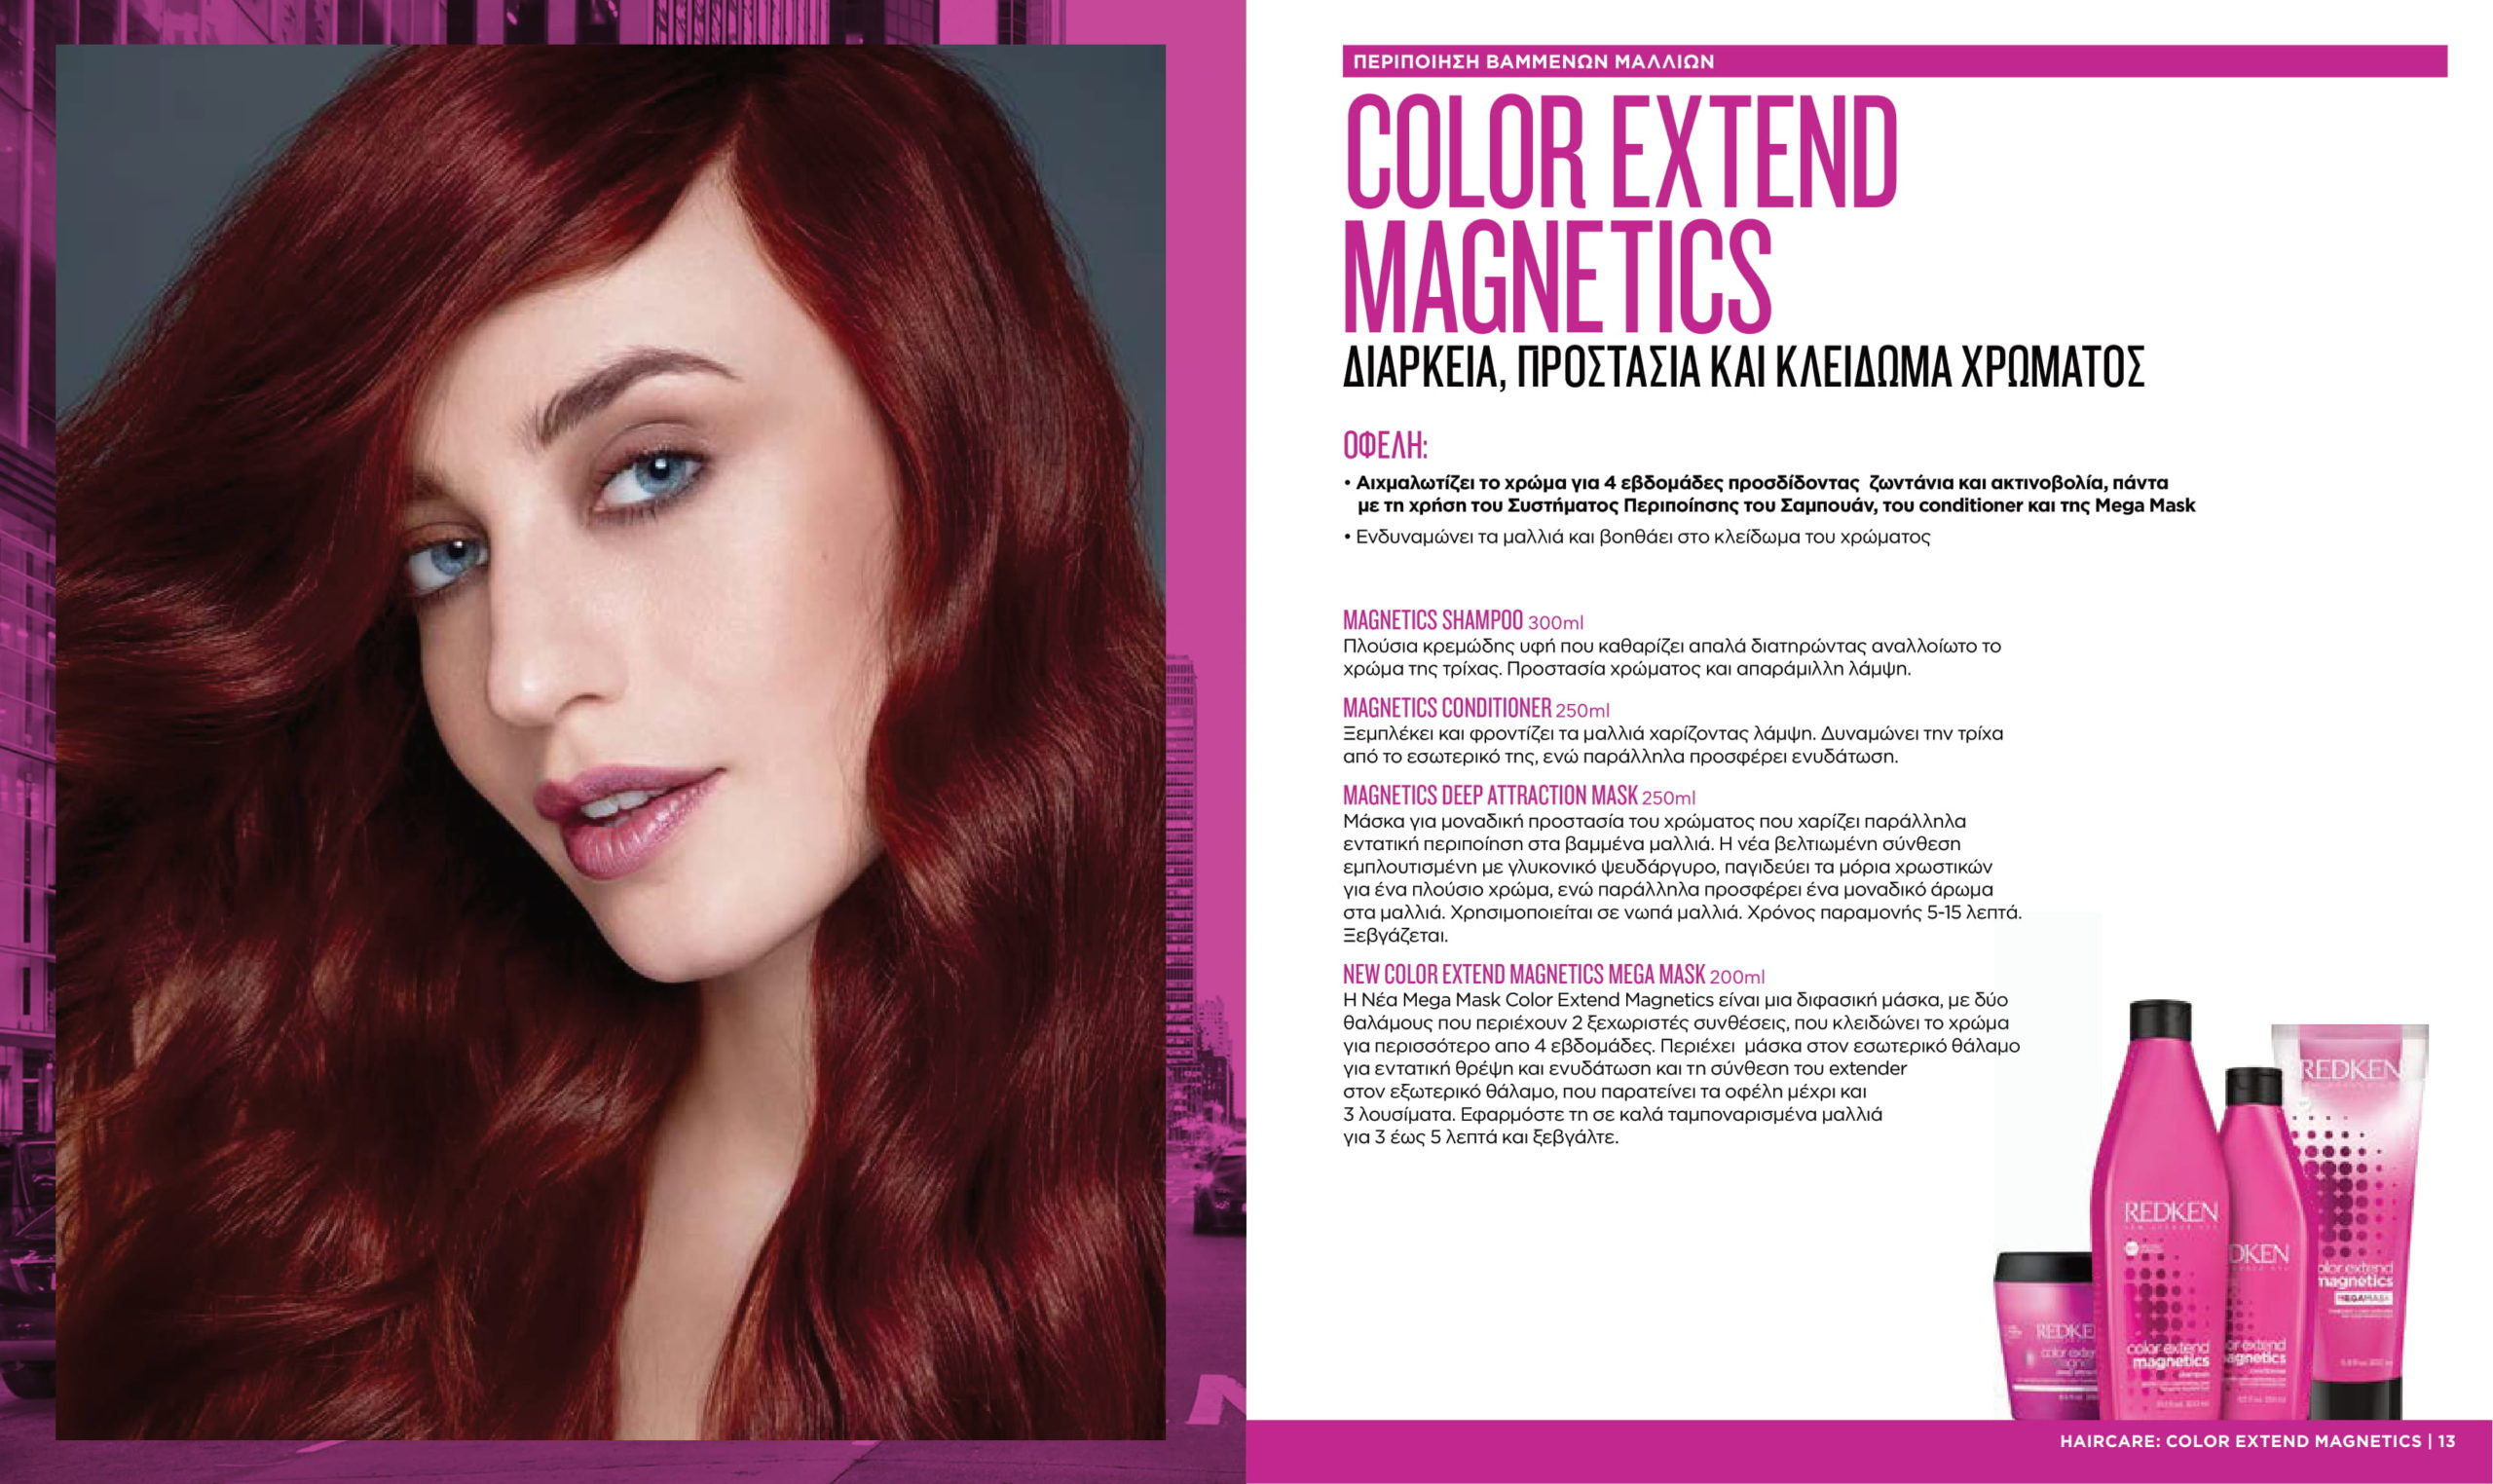 color extend magnetics